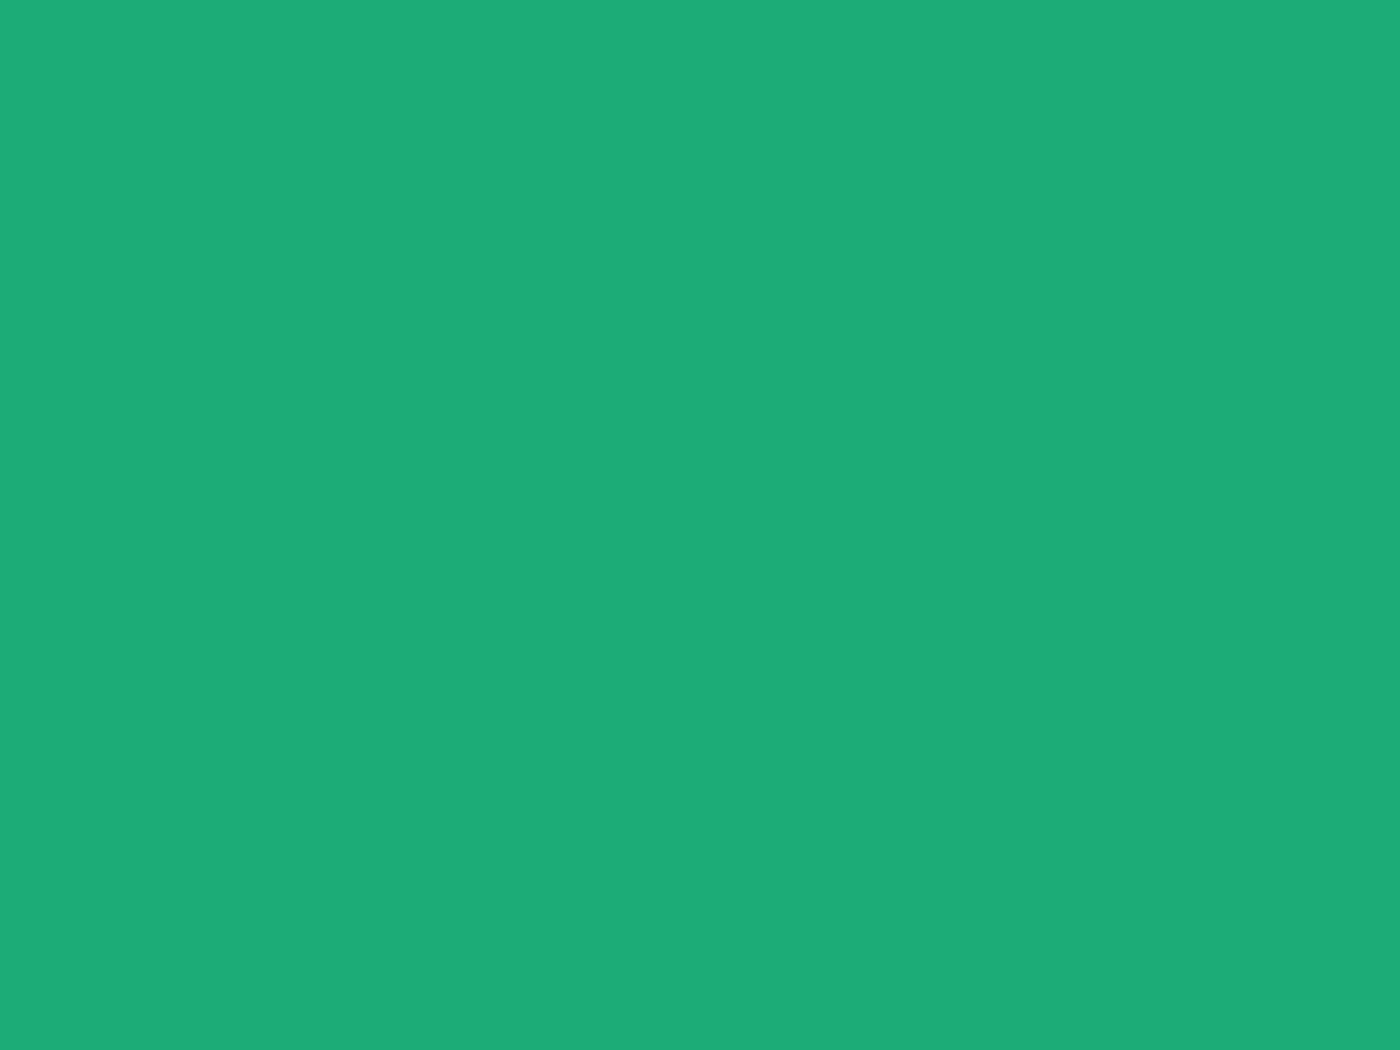 1400x1050 Green Crayola Solid Color Background